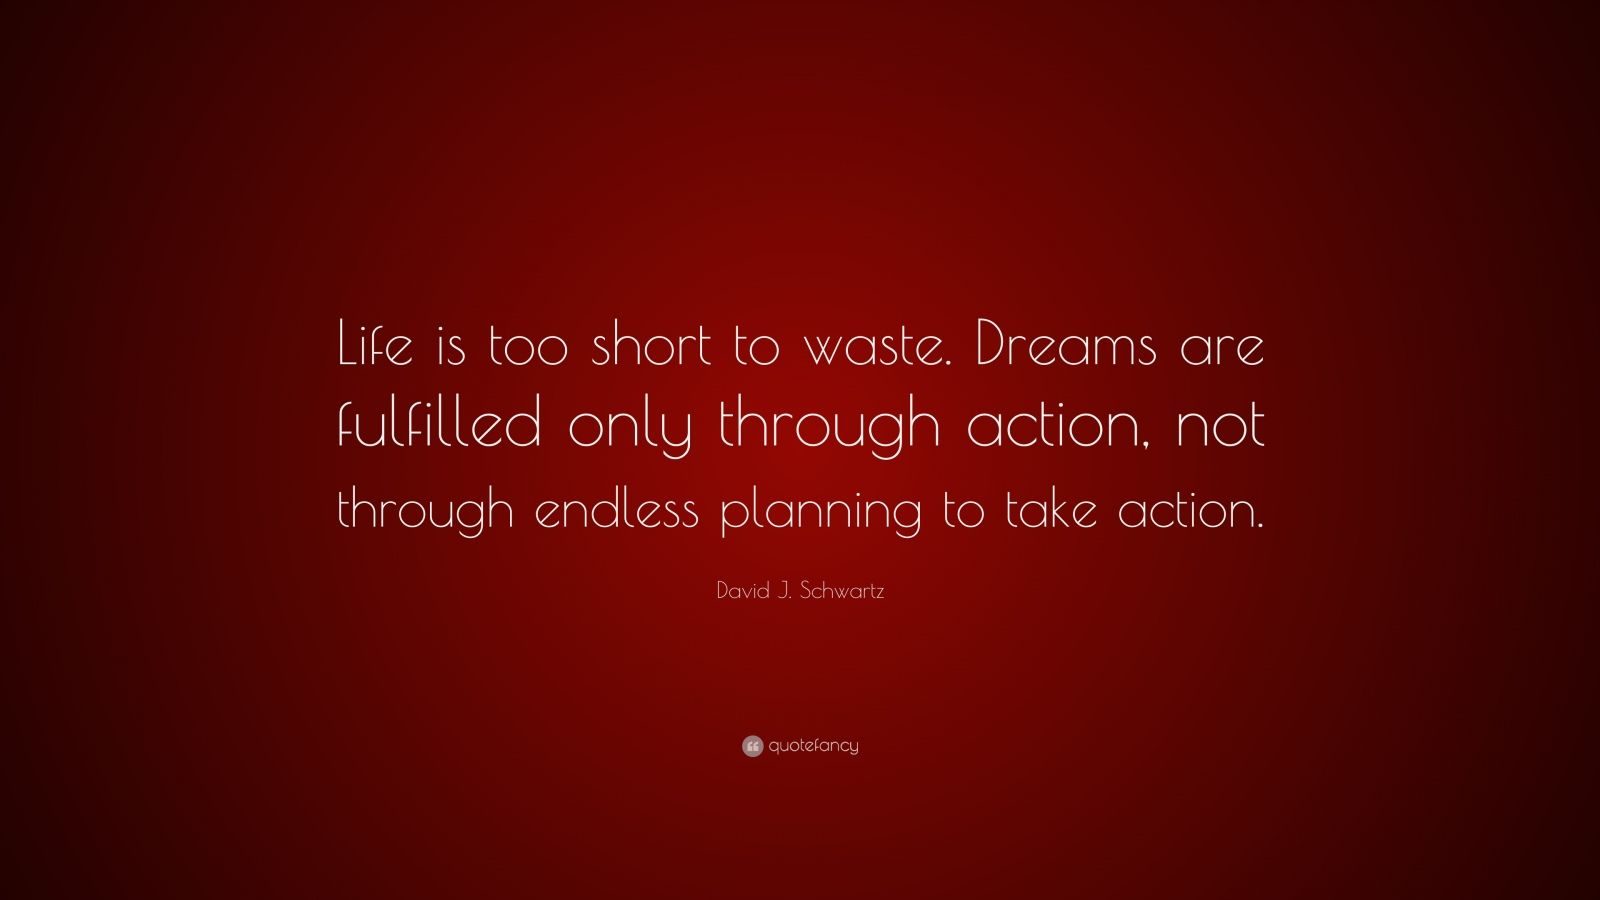 """David J. Schwartz Quote: """"Life is too short to waste. Dreams are fulfilled only through action, not through endless planning to take action."""""""